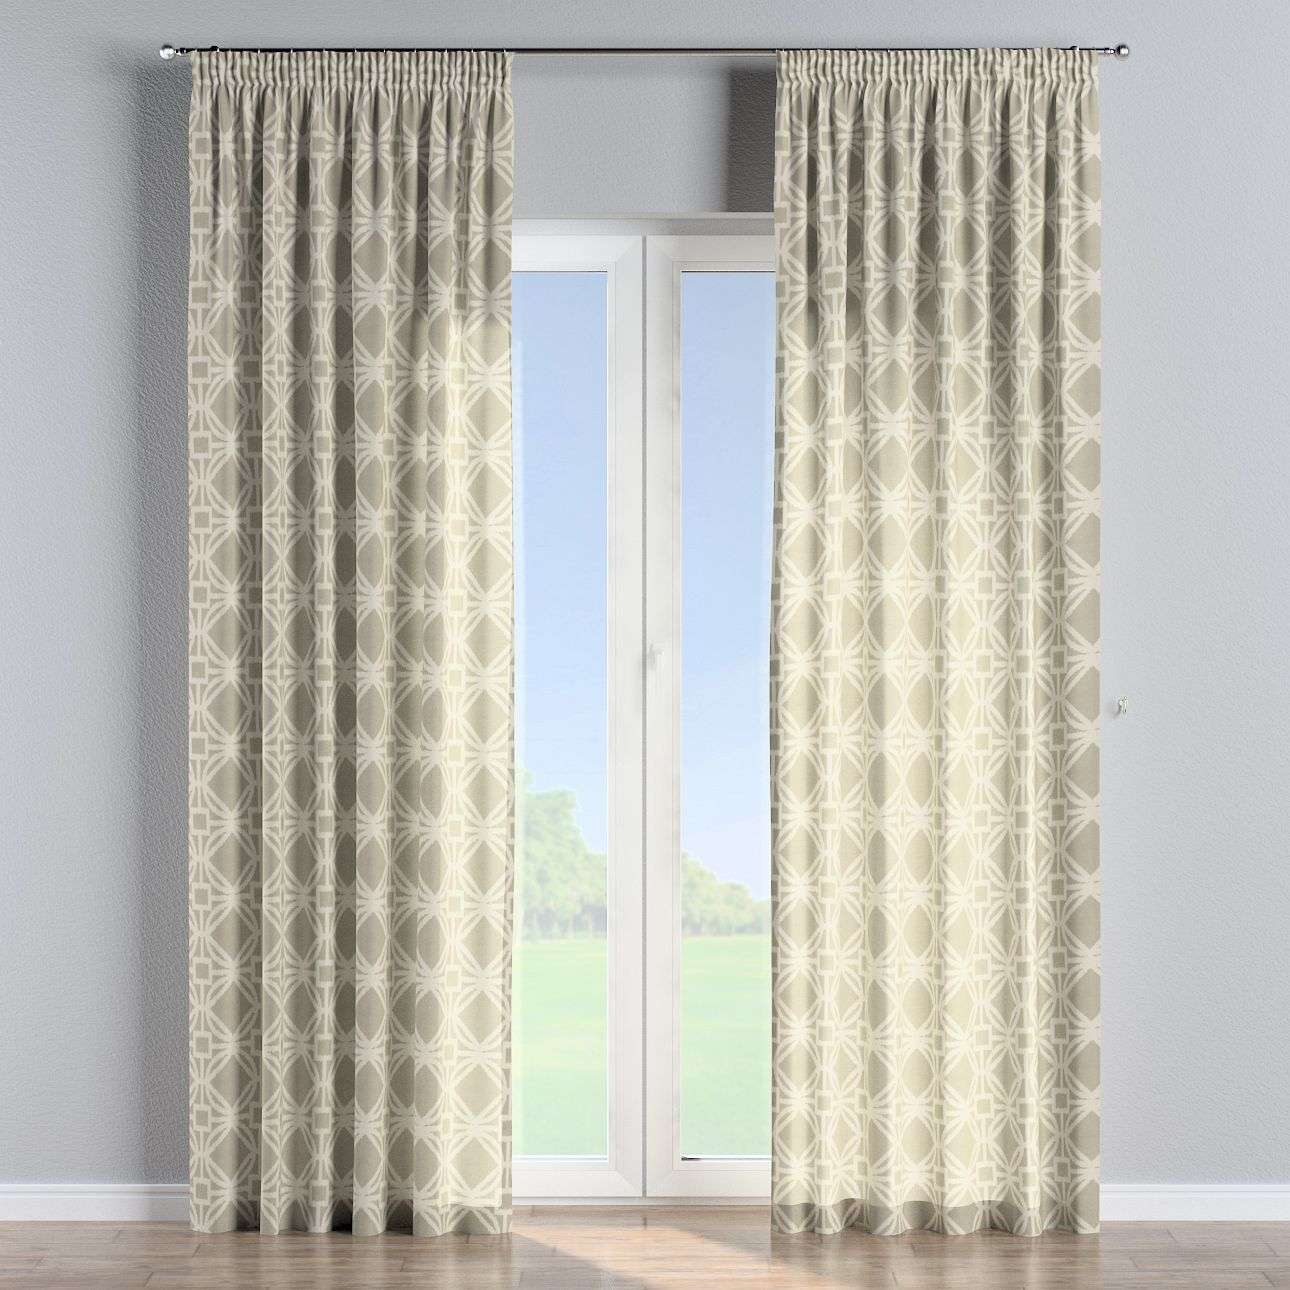 Pencil pleat curtains 130 × 260 cm (51 × 102 inch) in collection Comics/Geometrical, fabric: 141-56